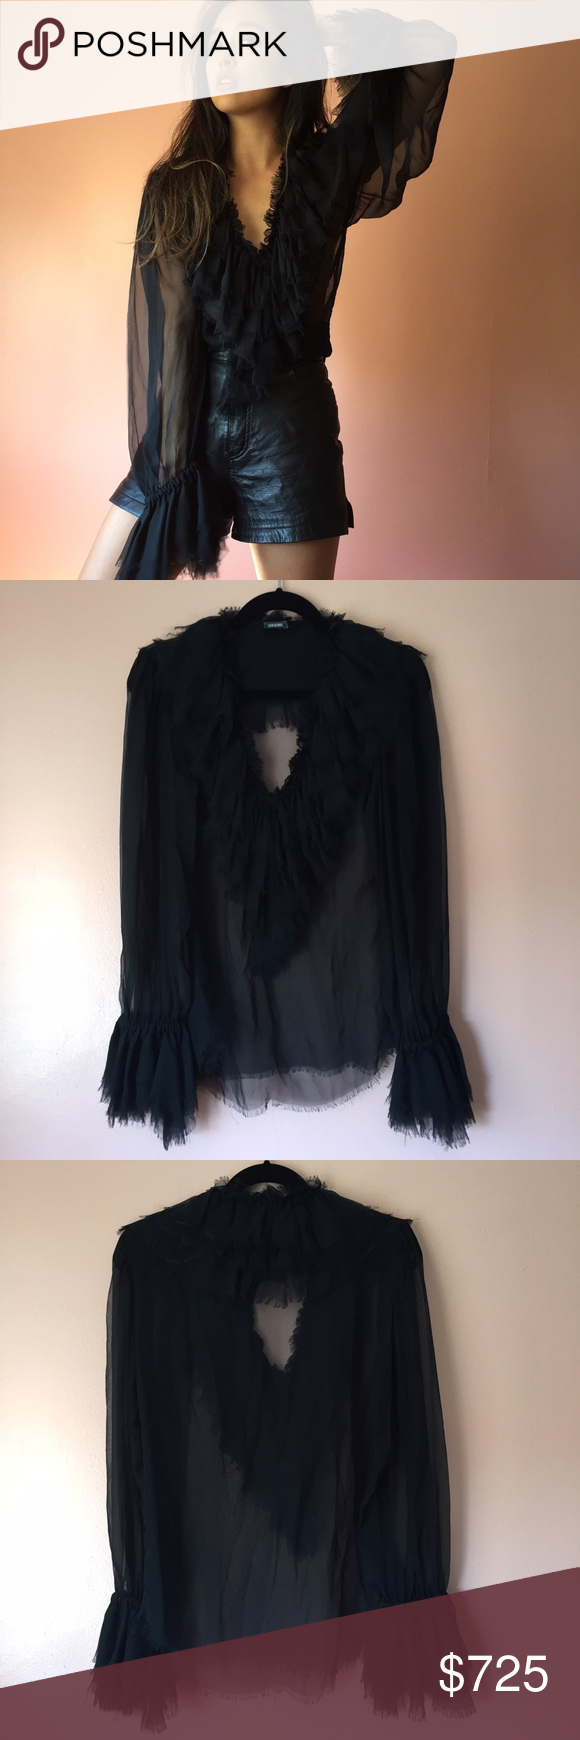 Moschino Couture Sheer Chiffon Blouse! #poshmark #fashion #shopping #style #Moschino #Tops